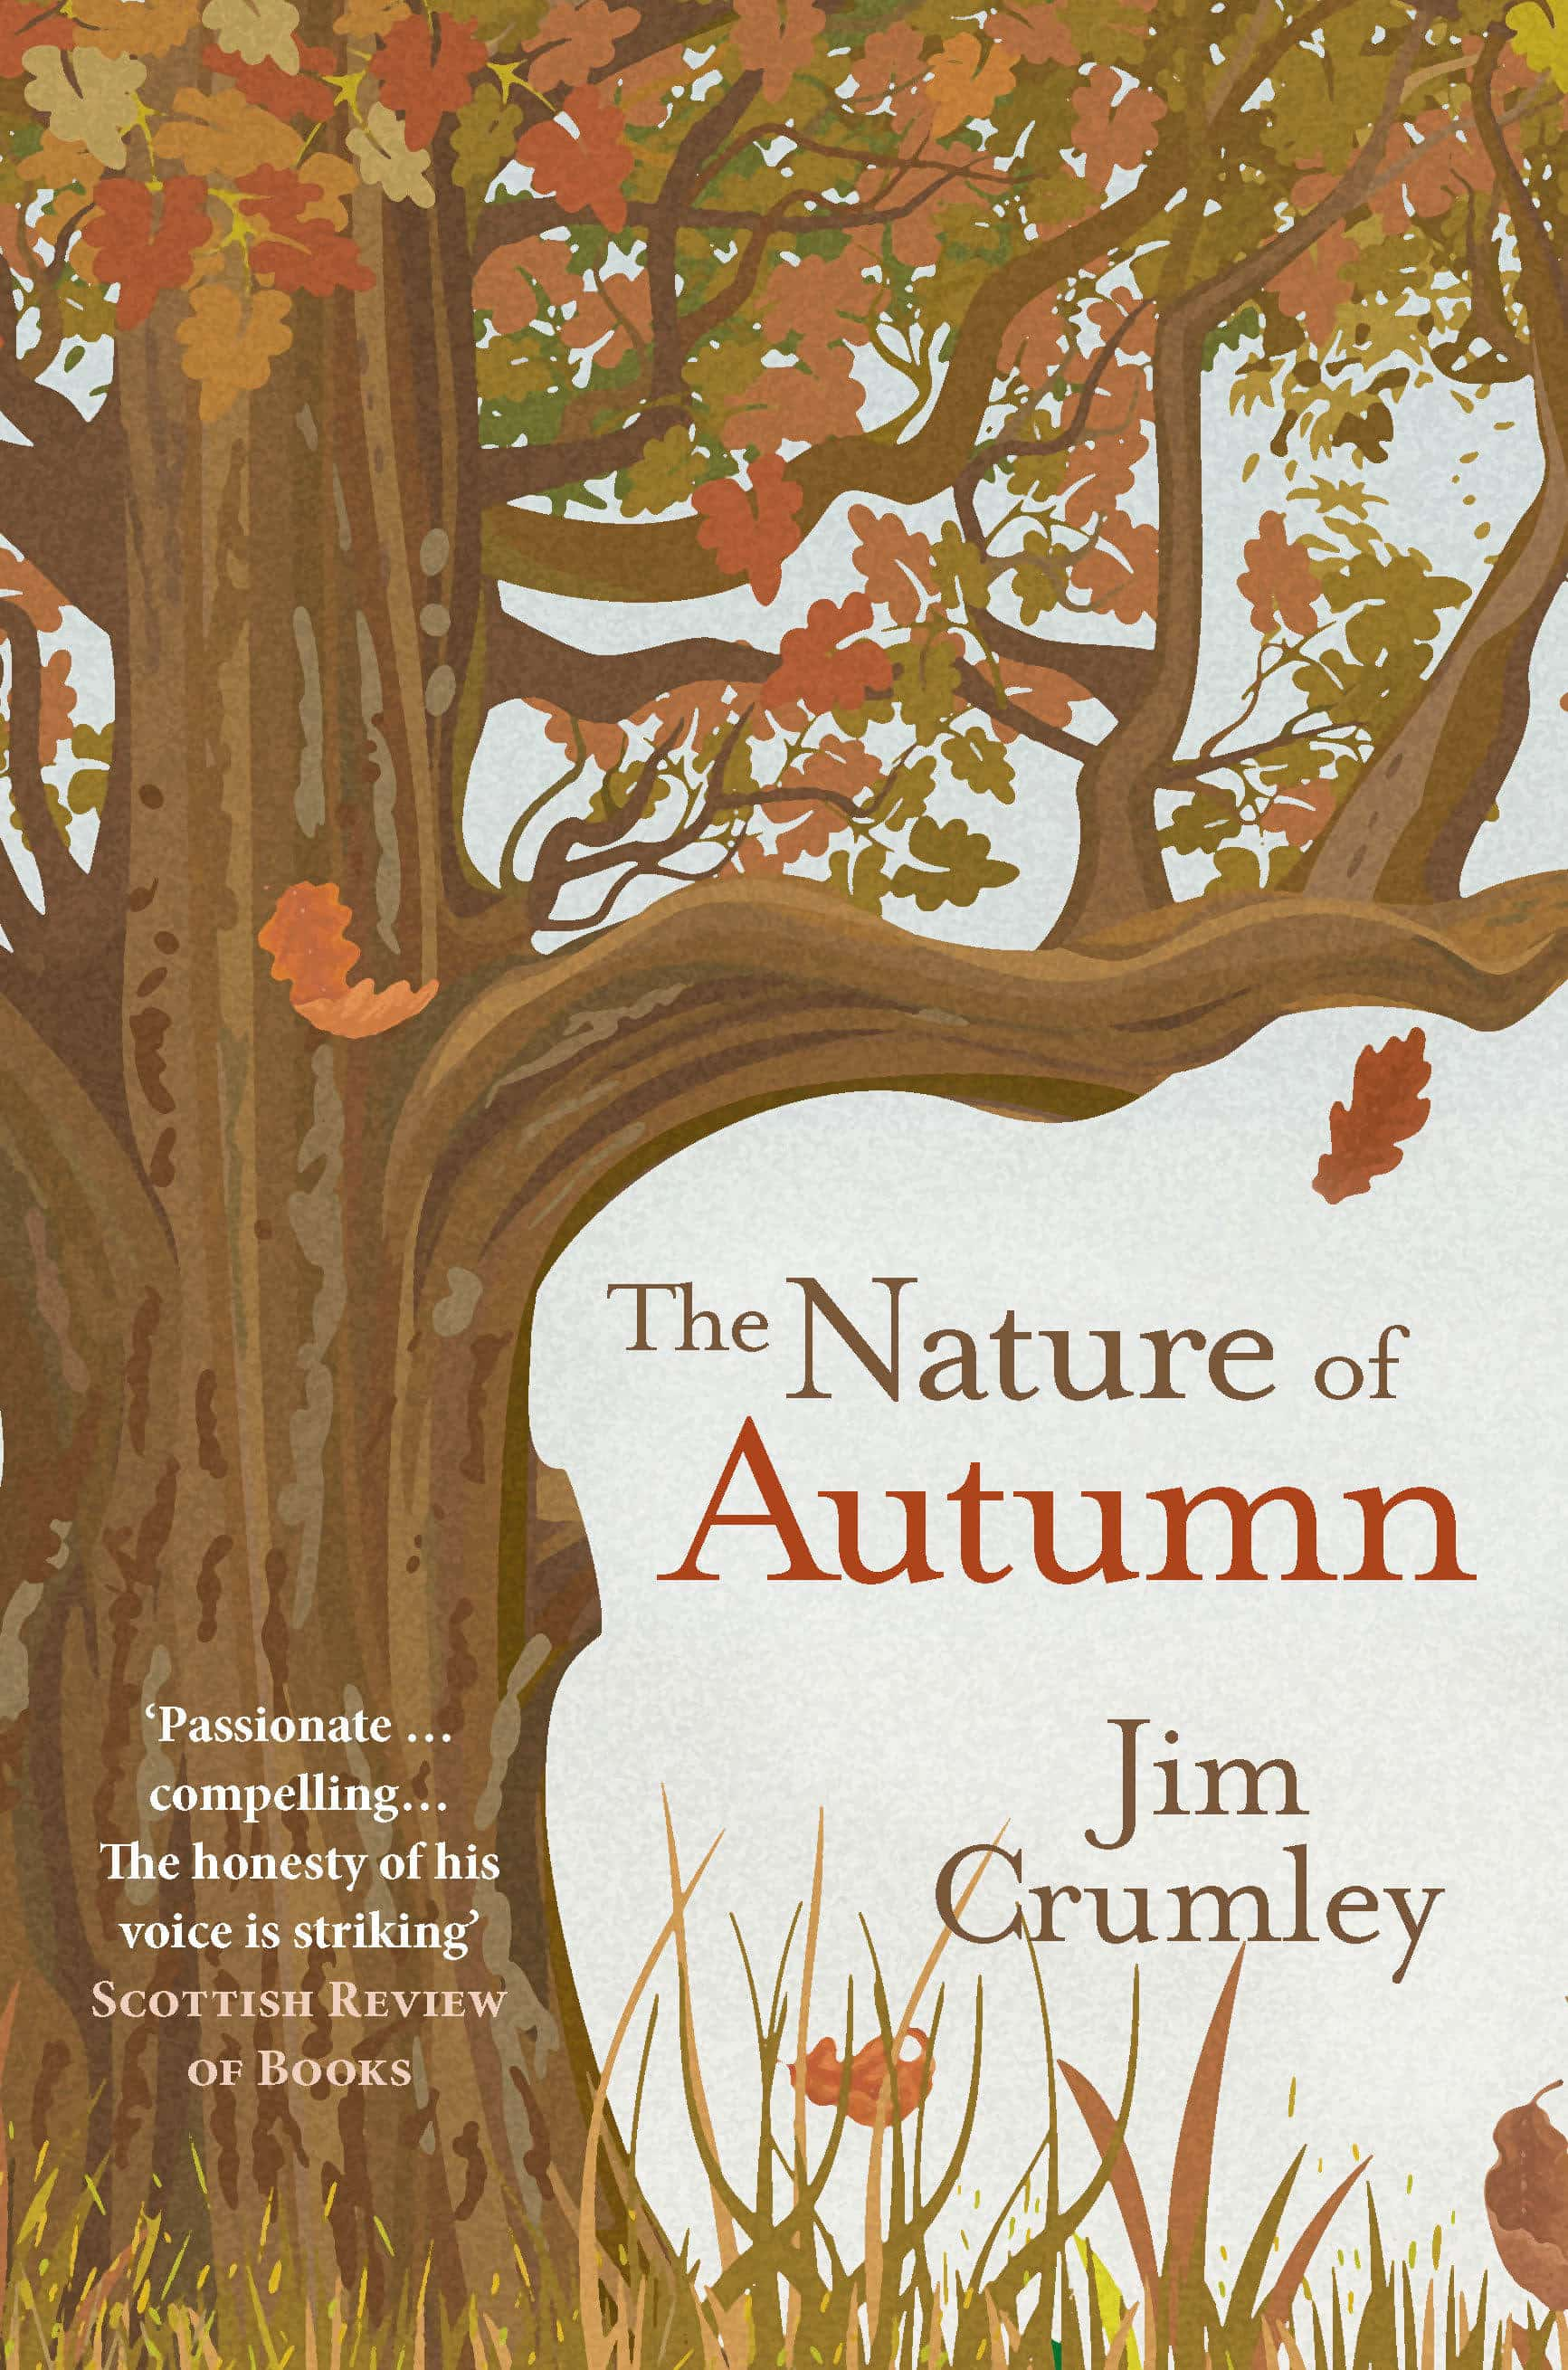 Jim Crumley - The Nature of Autumn